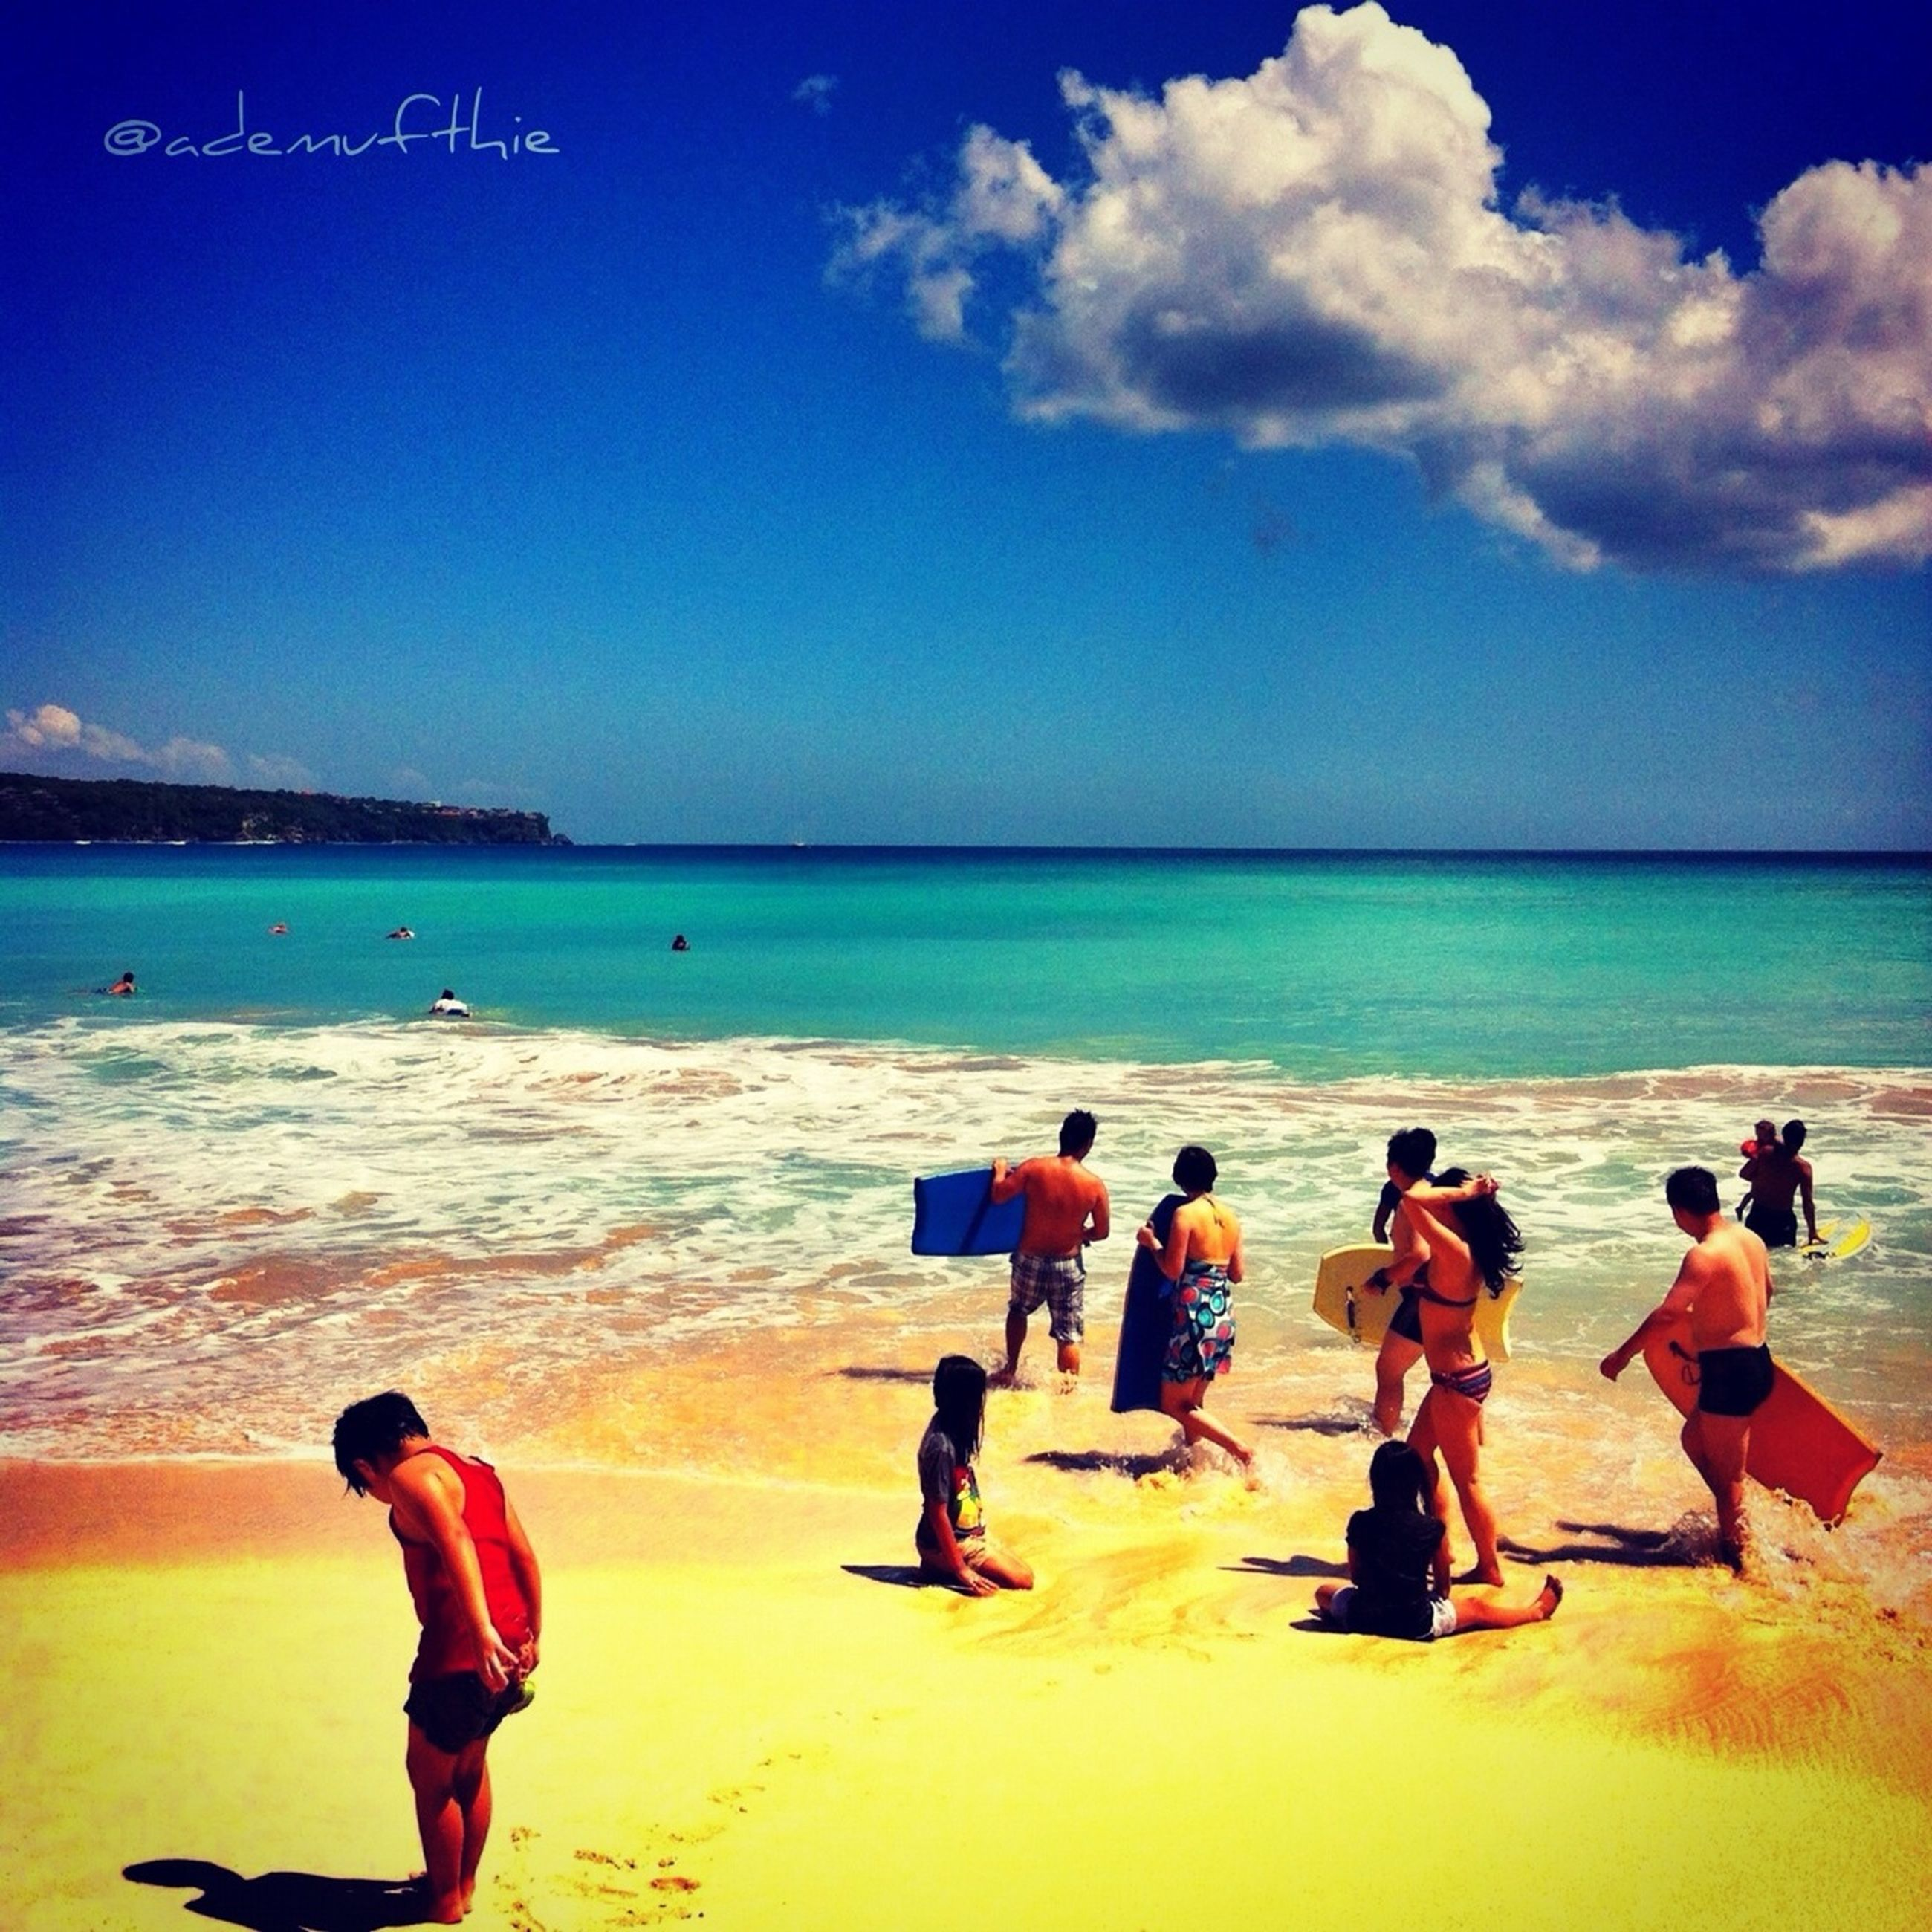 sea, horizon over water, beach, water, togetherness, leisure activity, lifestyles, vacations, shore, sky, enjoyment, bonding, blue, men, love, person, sand, childhood, family